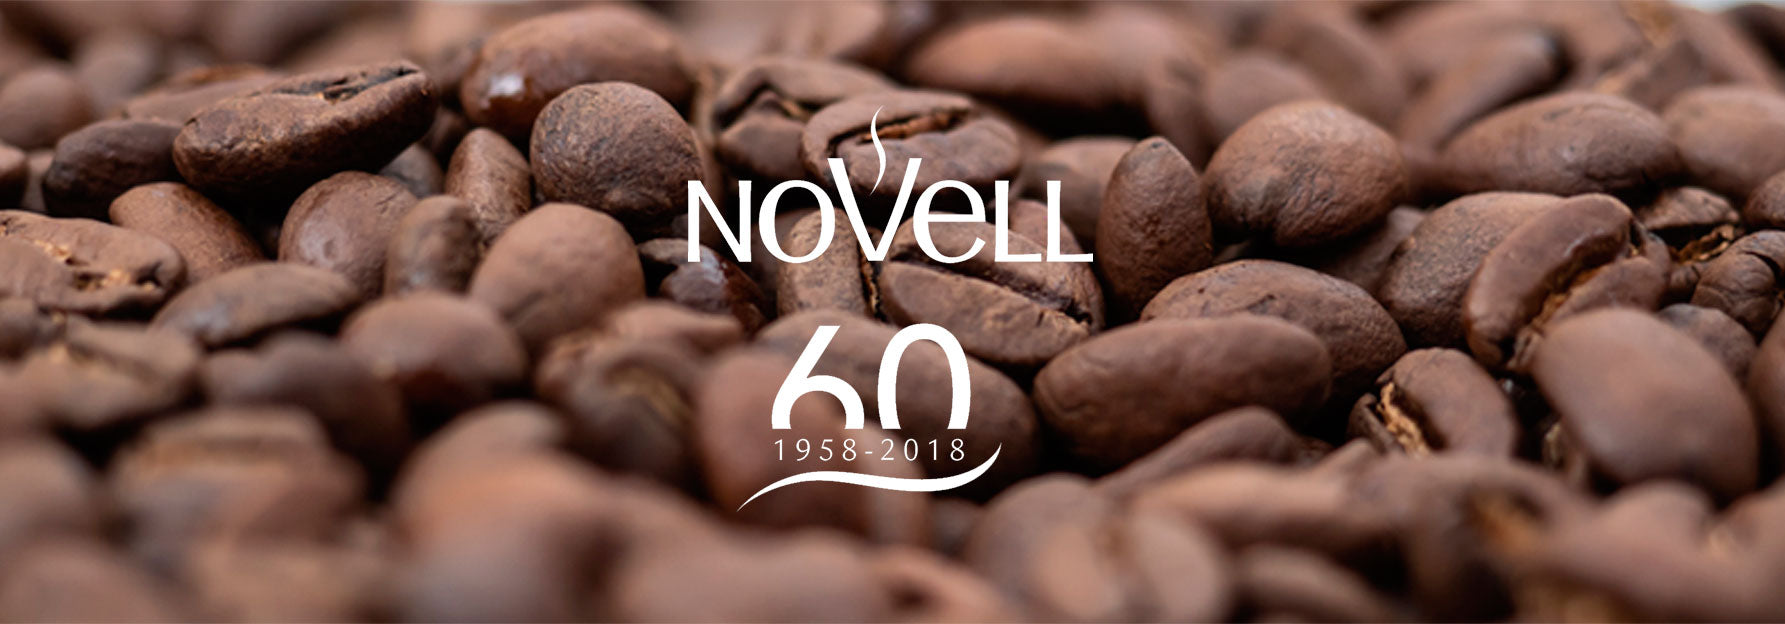 We have been making coffee for over 60 years. Six decades watching a great company history unfold